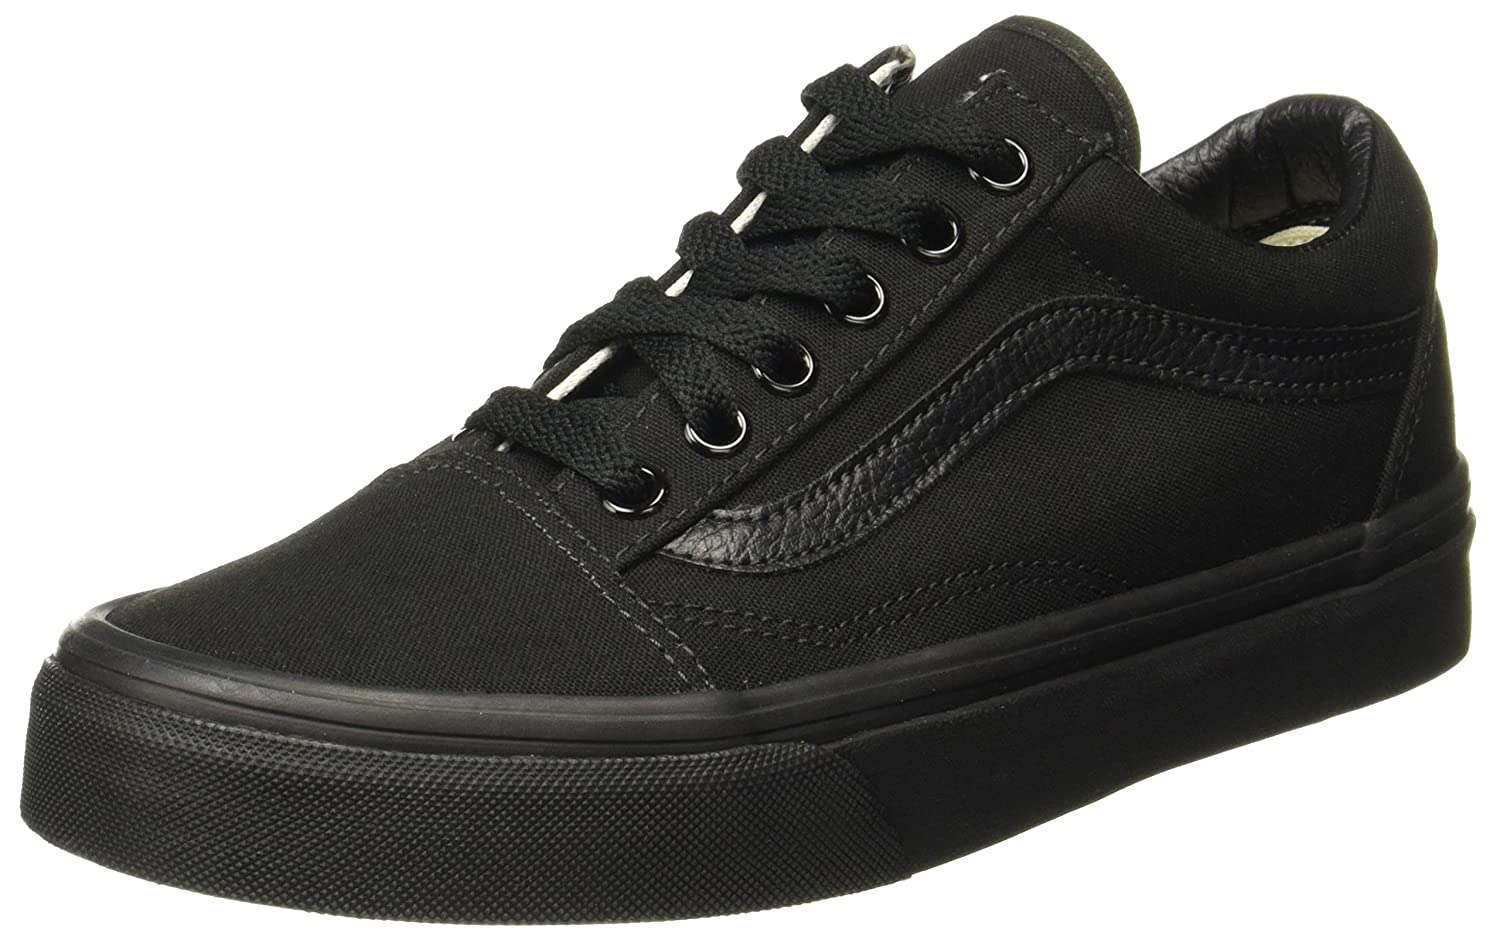 Vans Old Skool Unisex Adults' Low-Top Trainers B000VVMC36 Men's 13, Women's 14.5 Medium|Black/Black